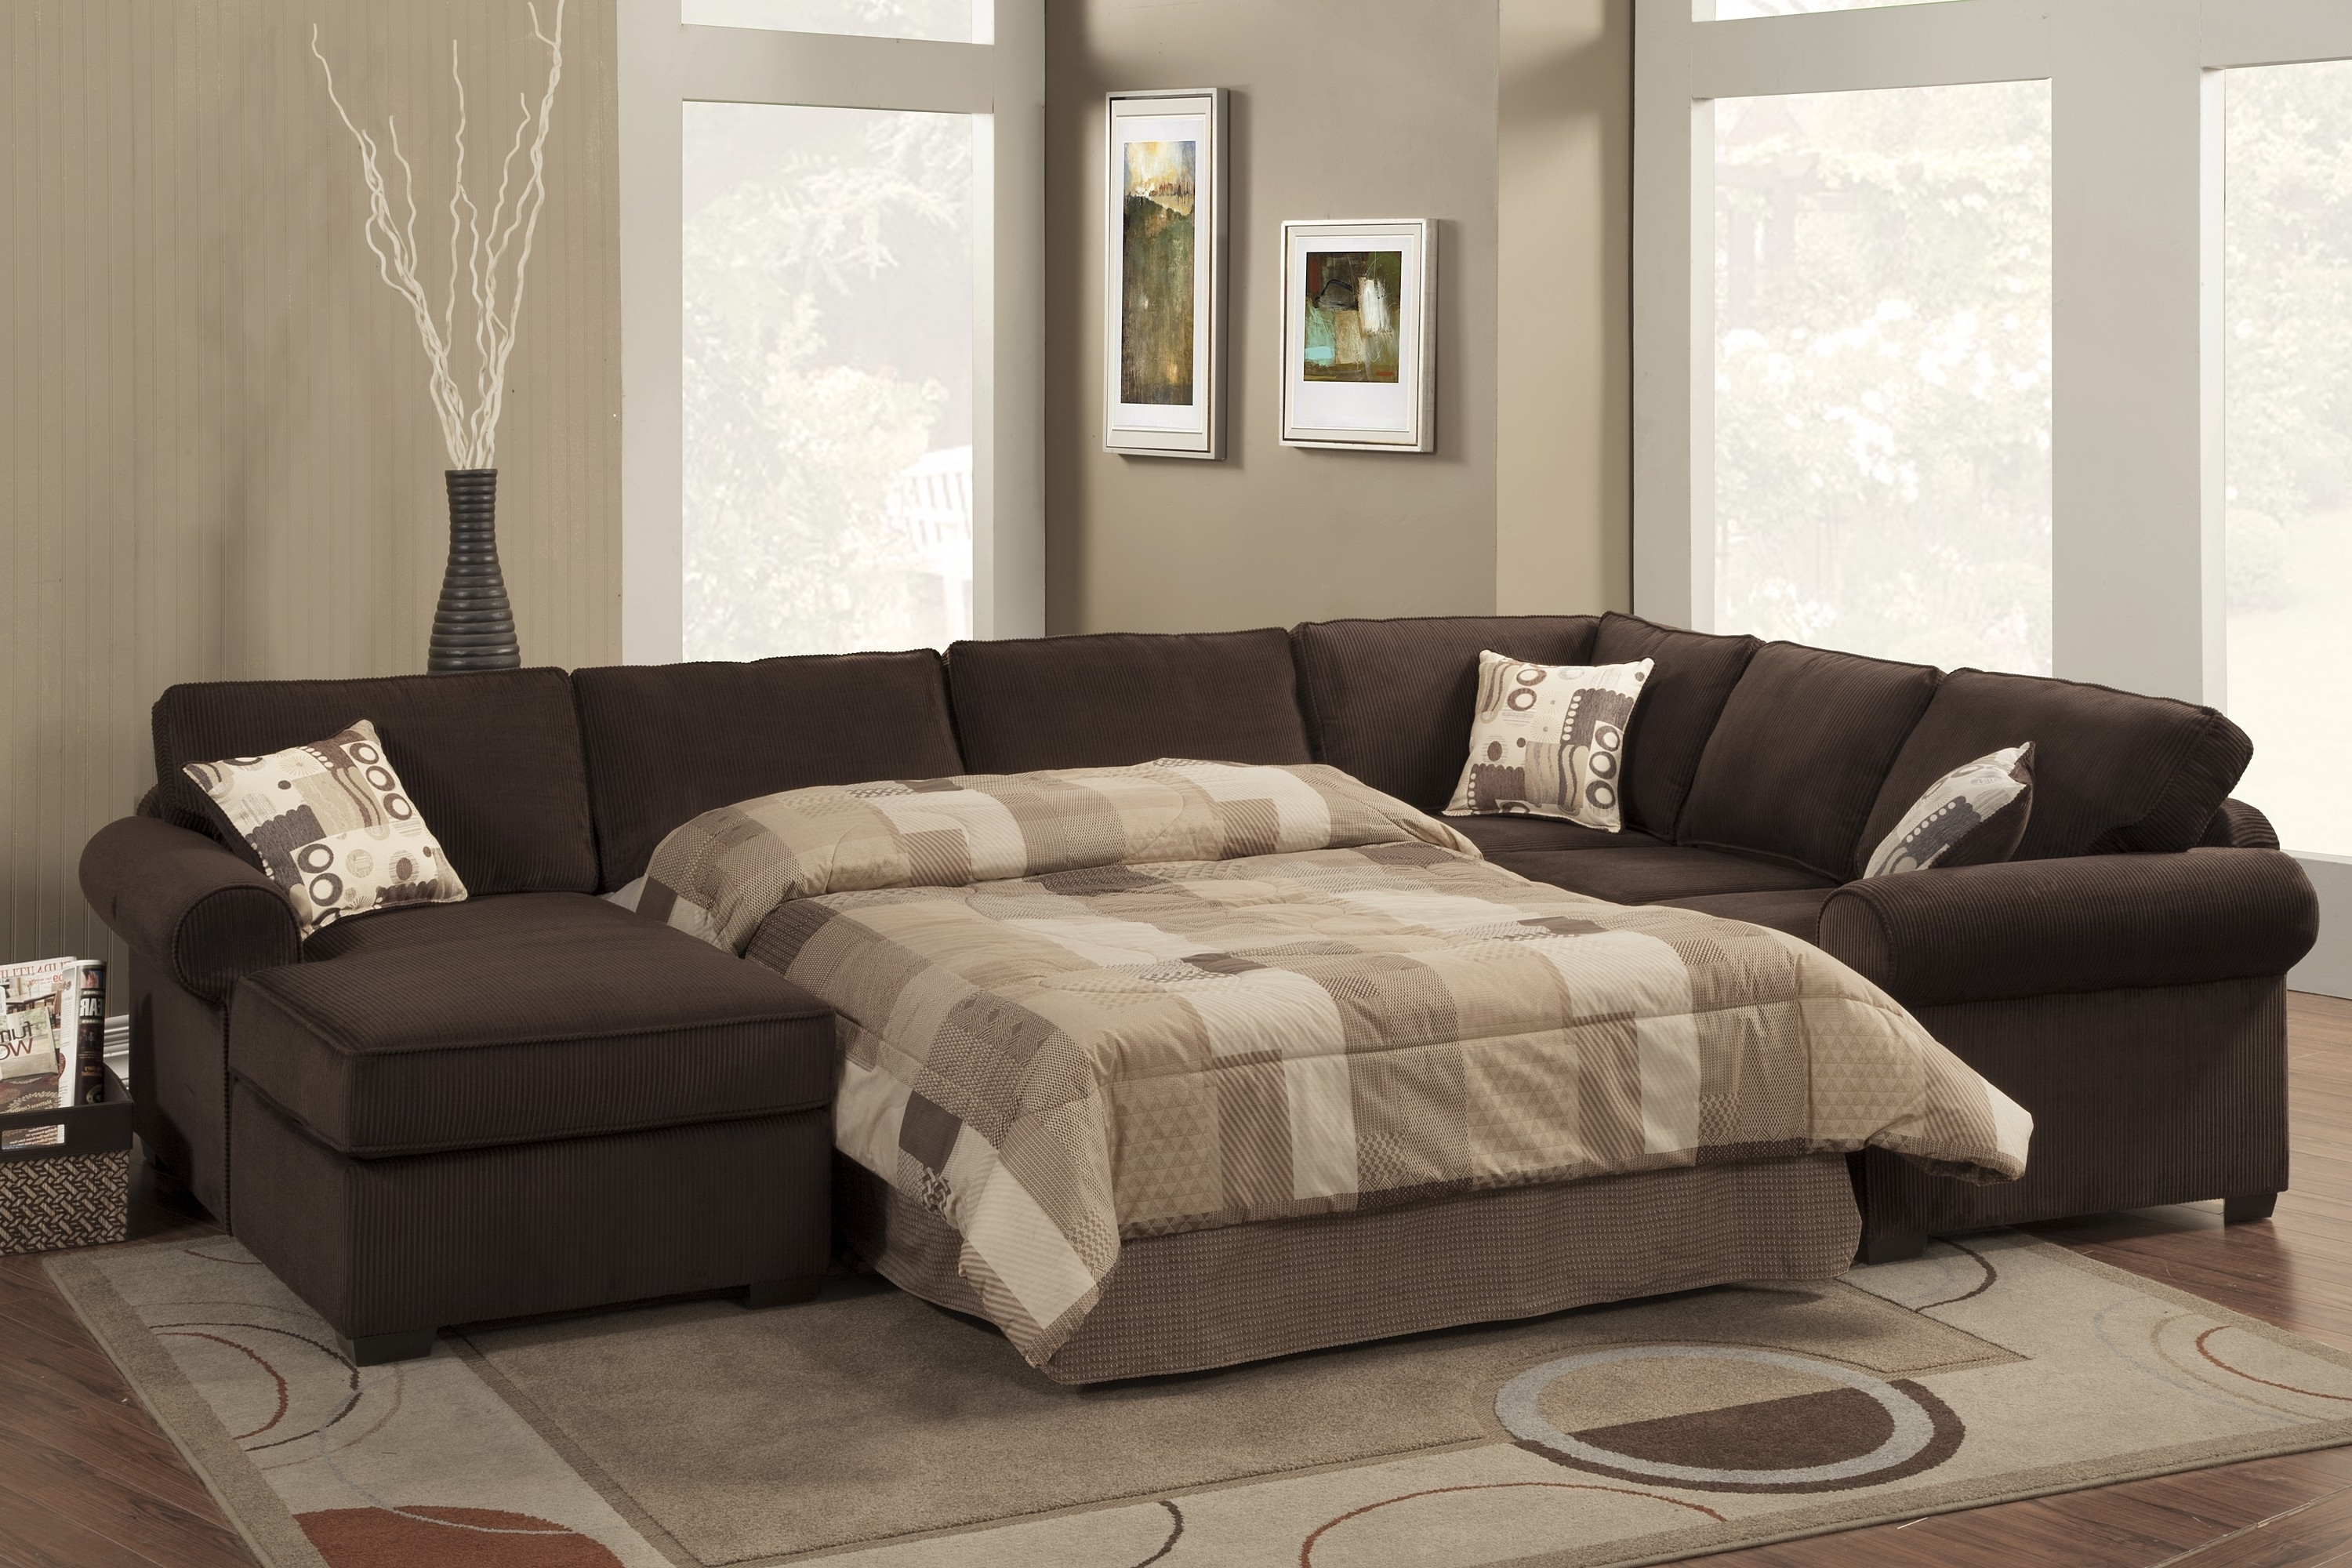 Extraordinary Sleeper Sofa Sectional Alluring Home Design Inside 2019 Sectional Sofas With Queen Size Sleeper (View 2 of 20)